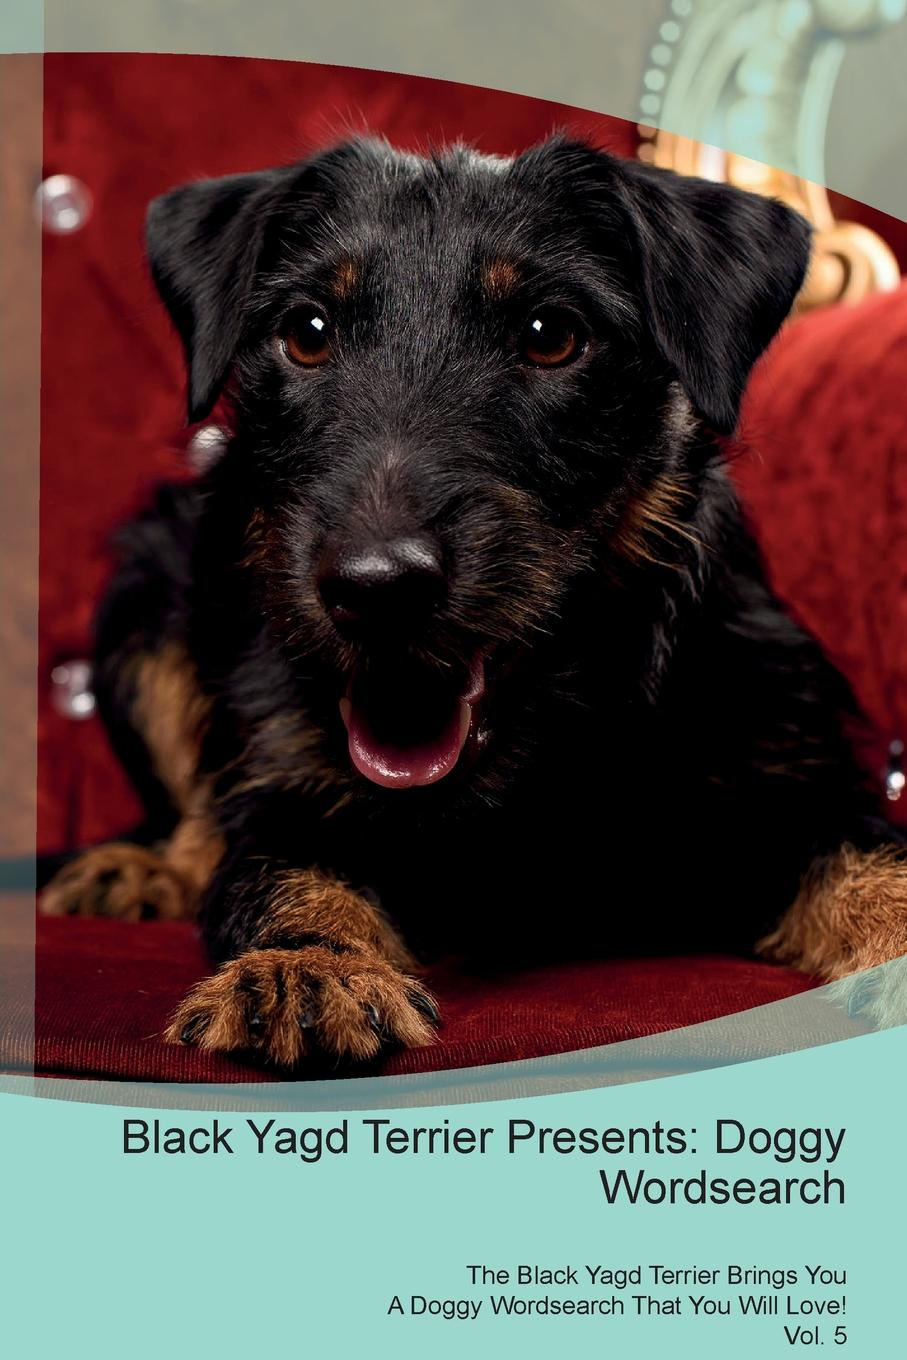 Doggy Puzzles Black Yagd Terrier Presents. Wordsearch The Brings You A That Will Love! Vol. 5